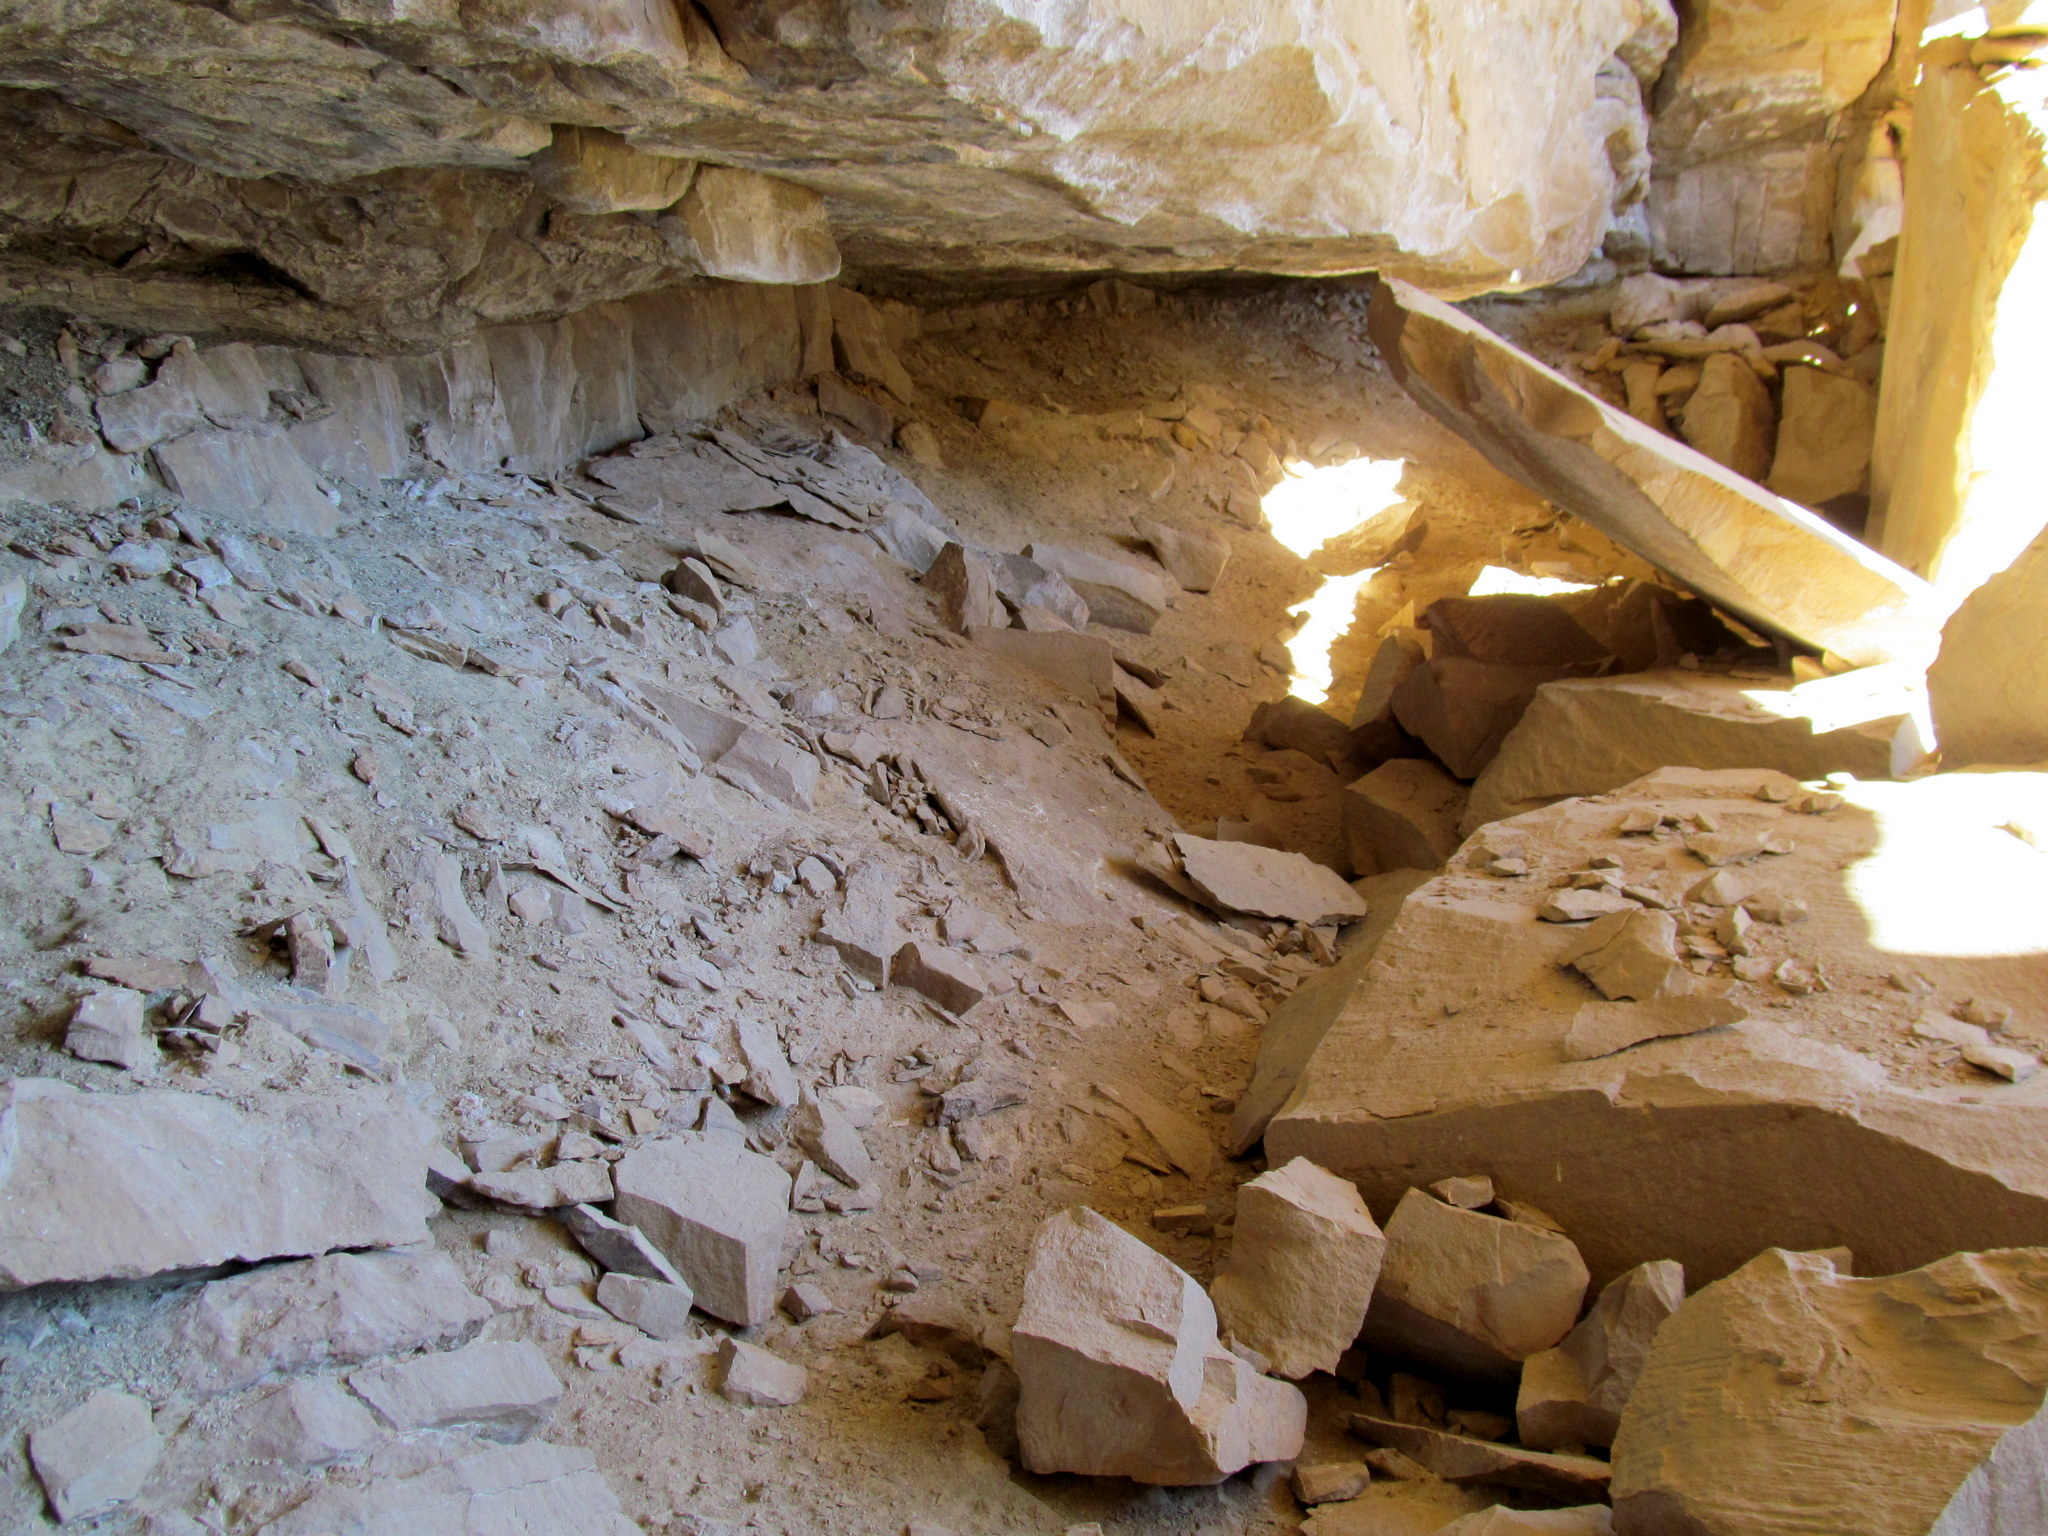 Photo: Inside the cave/alcove